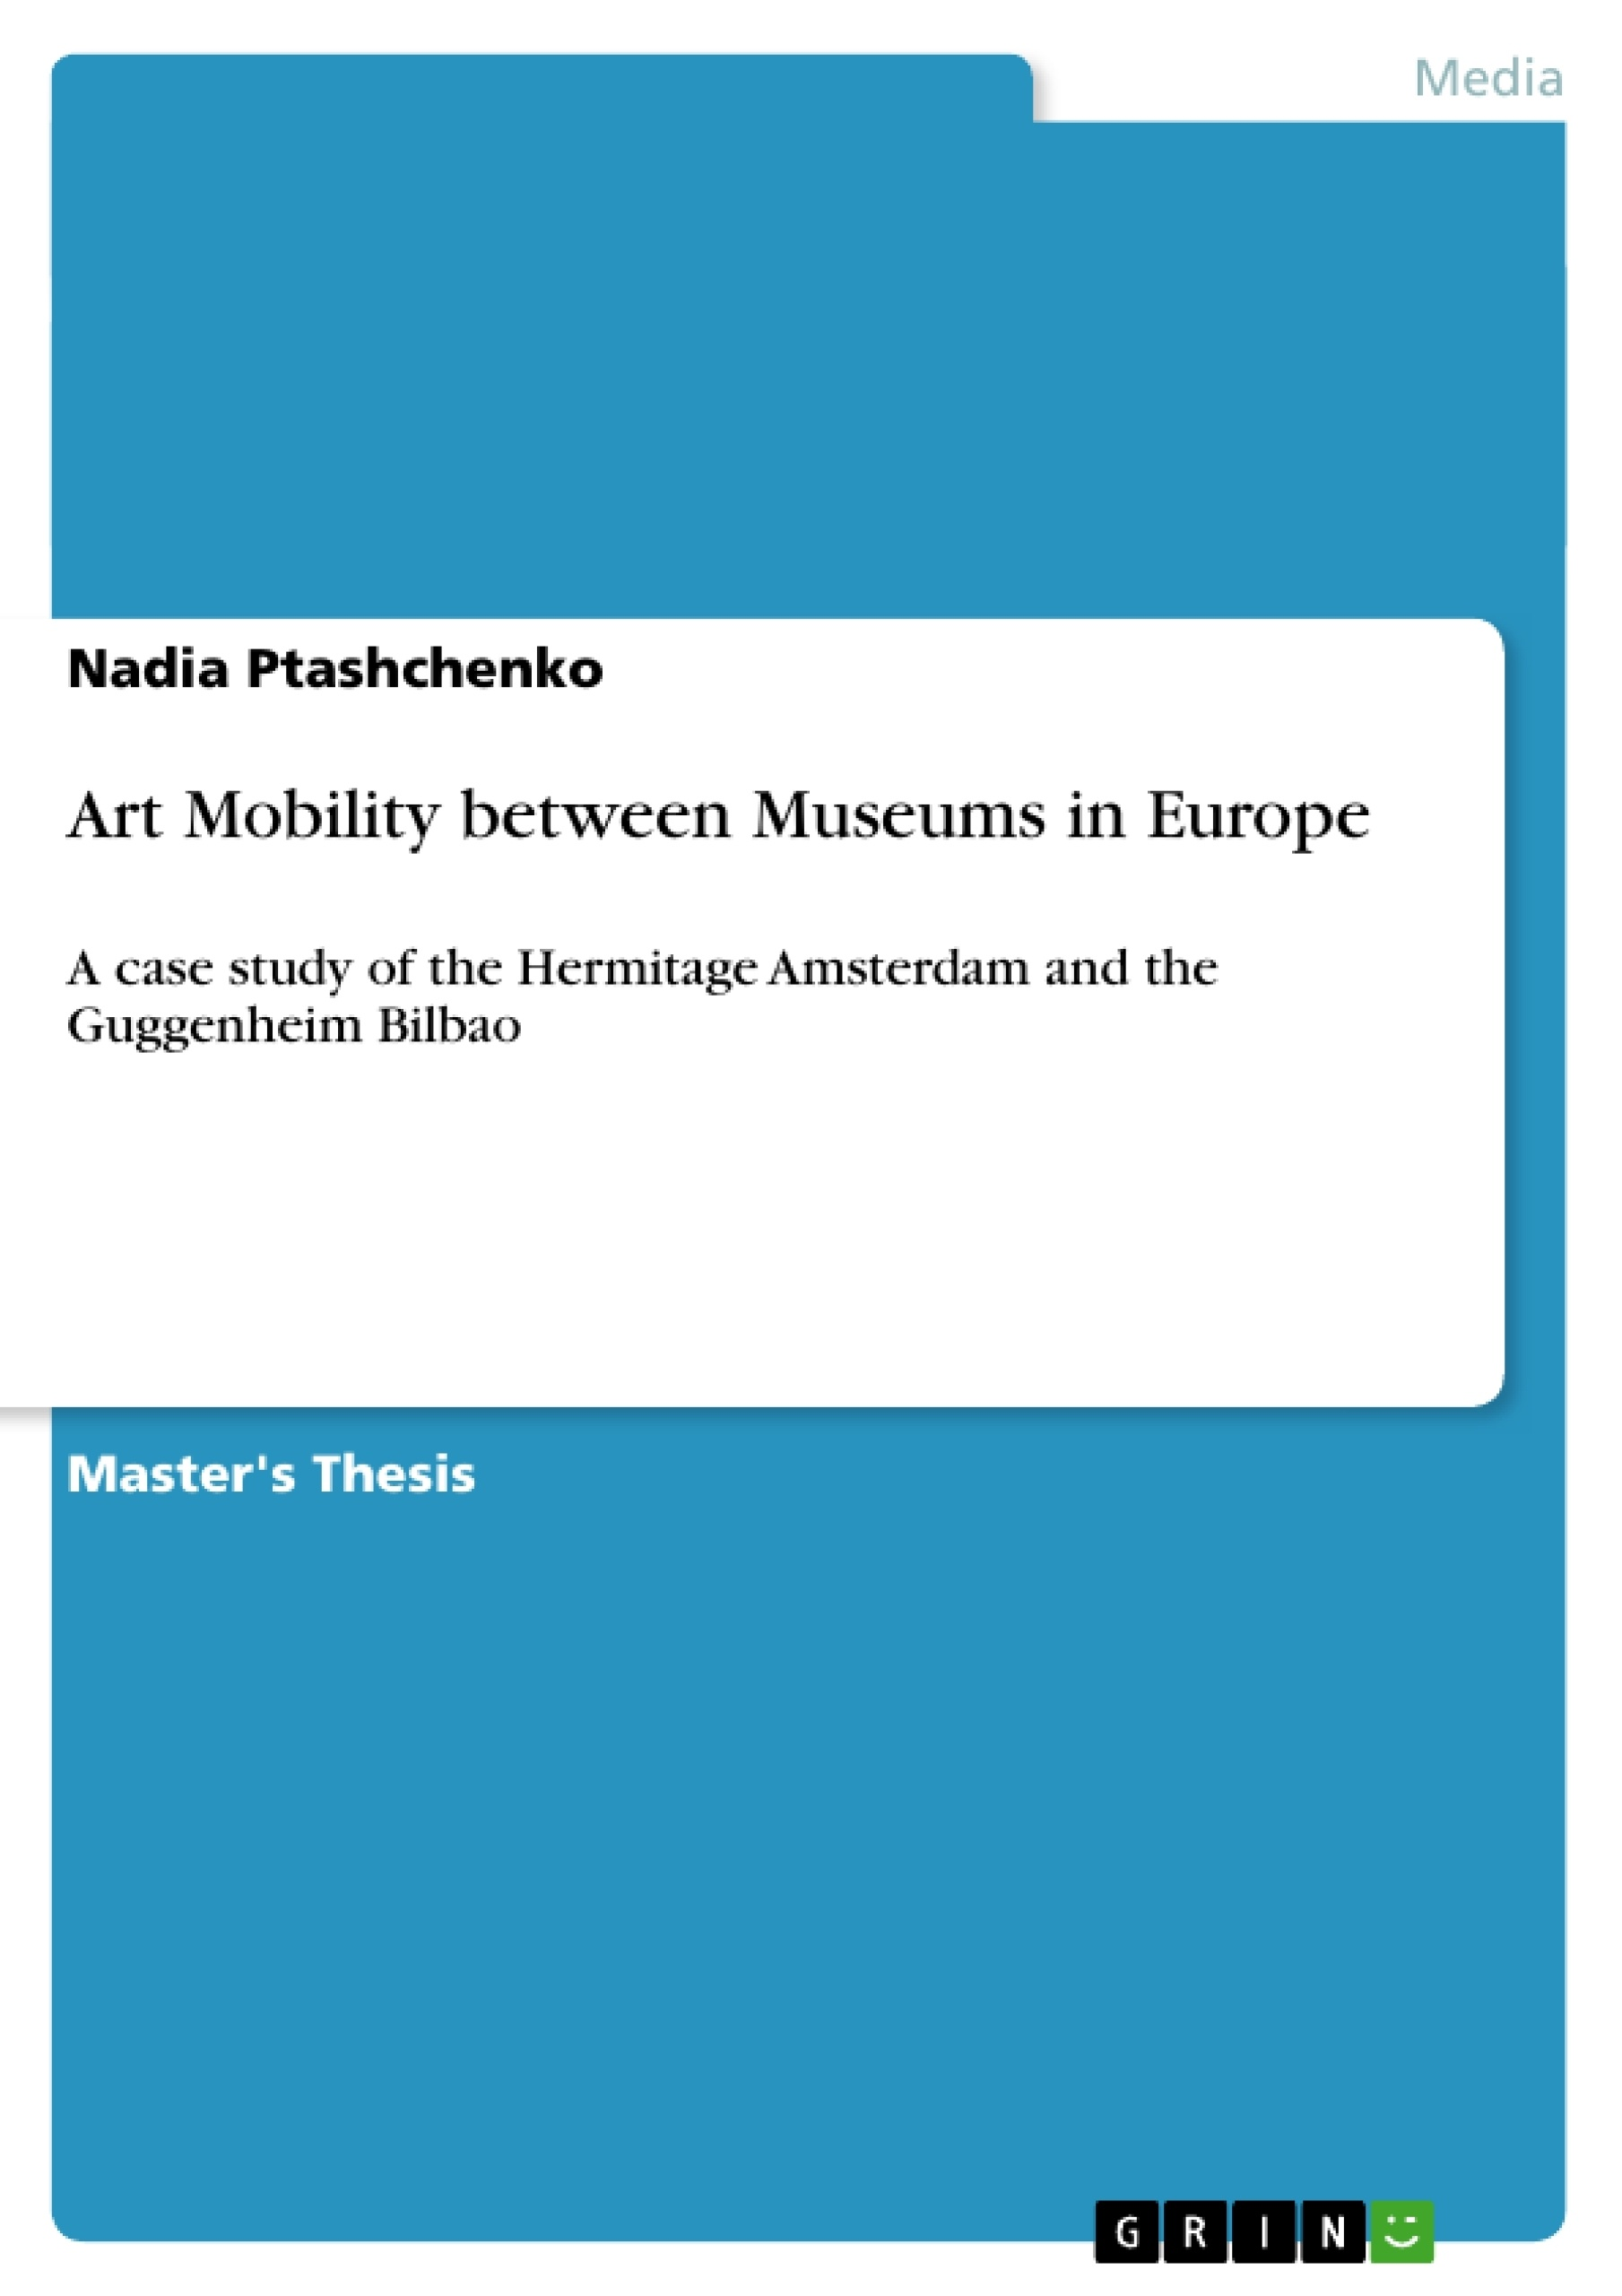 Title: Art Mobility between Museums in Europe